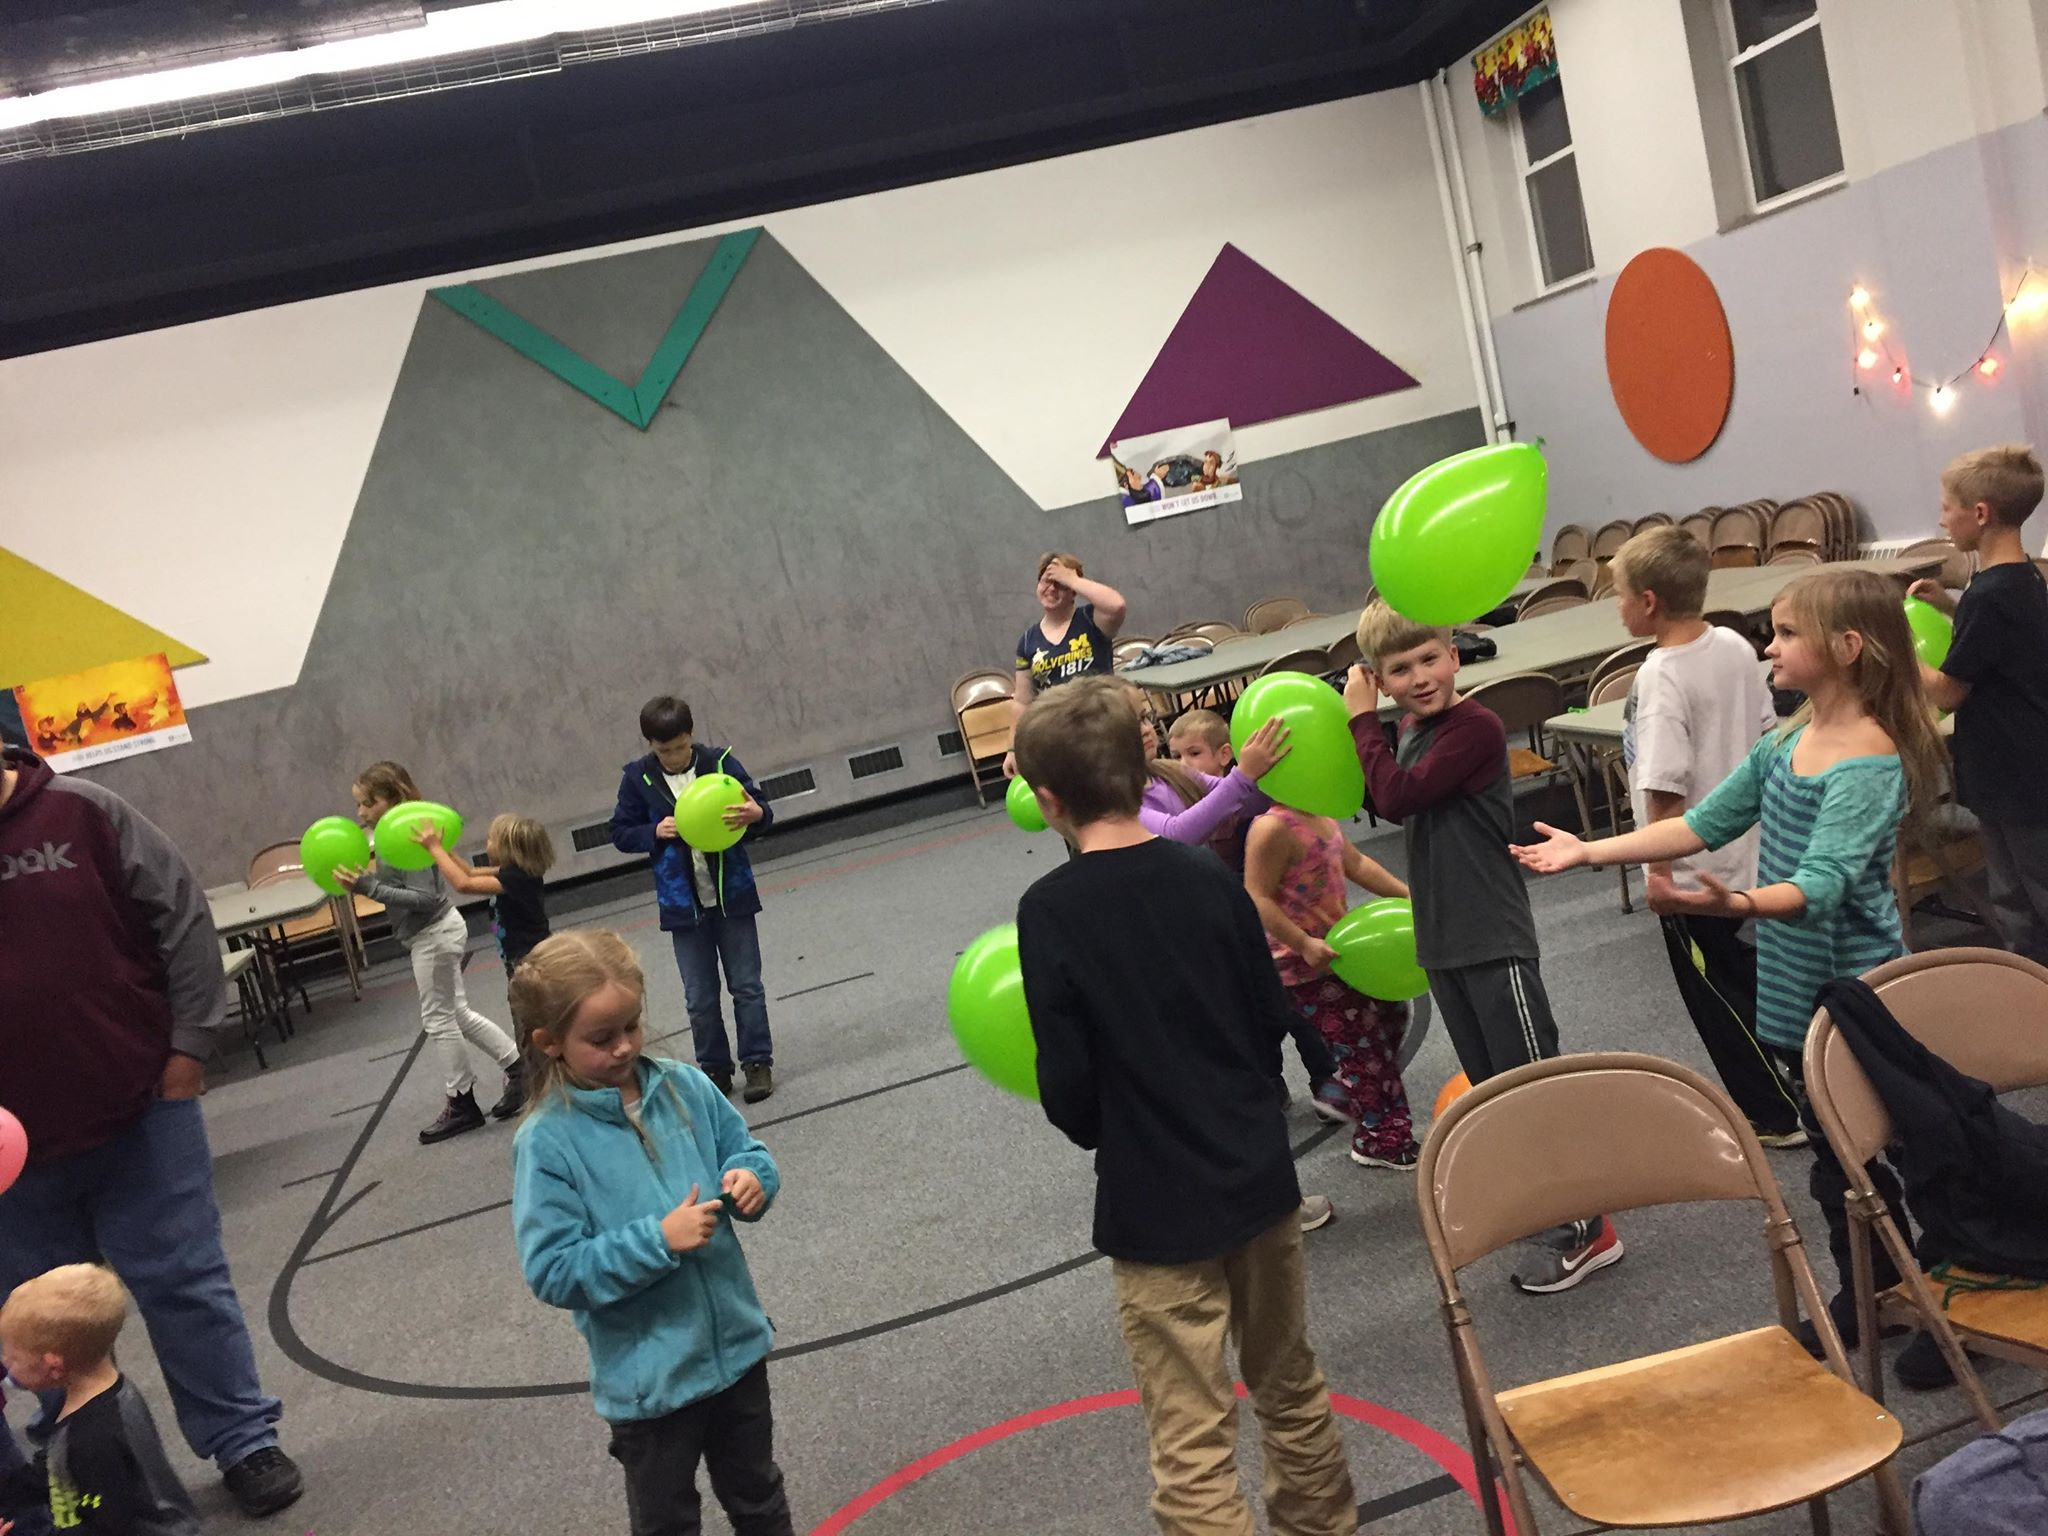 We're learning that God shows mercy even when we don't. It can be easy to hold grudges against others instead of showing mercy, but holding grudges doesn't solve anything. It actually makes things harder for you and others around you. Our next game will show you what that's like.  The kids worked together to keep all the balloons in the air.